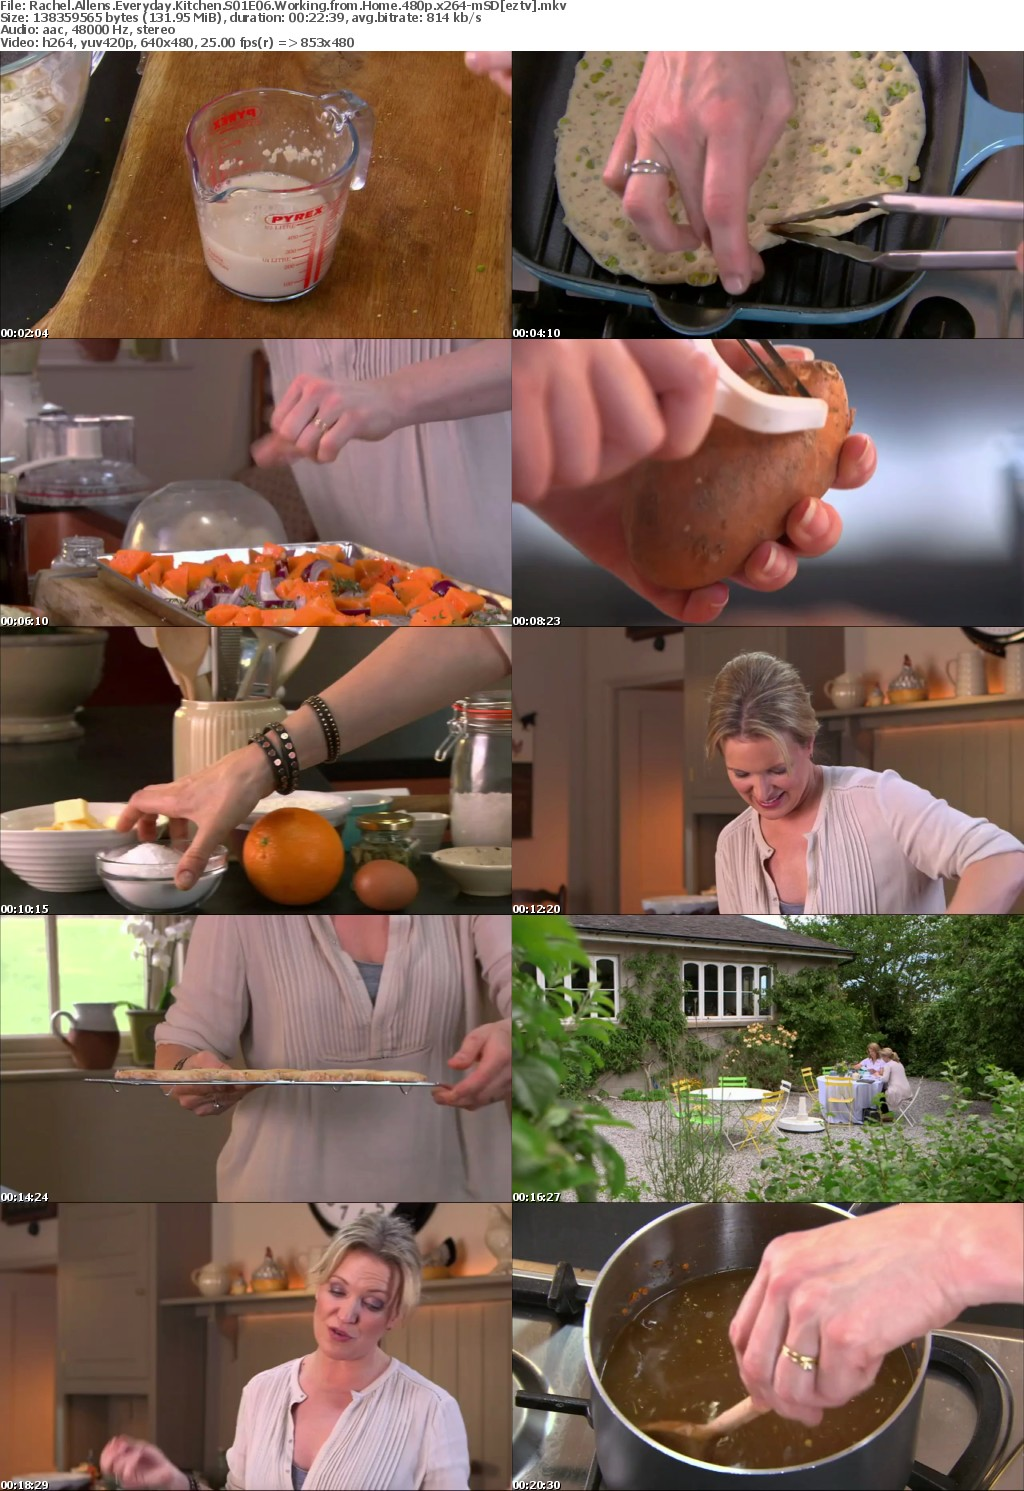 Rachel Allens Everyday Kitchen S01E06 Working from Home 480p x264-mSD